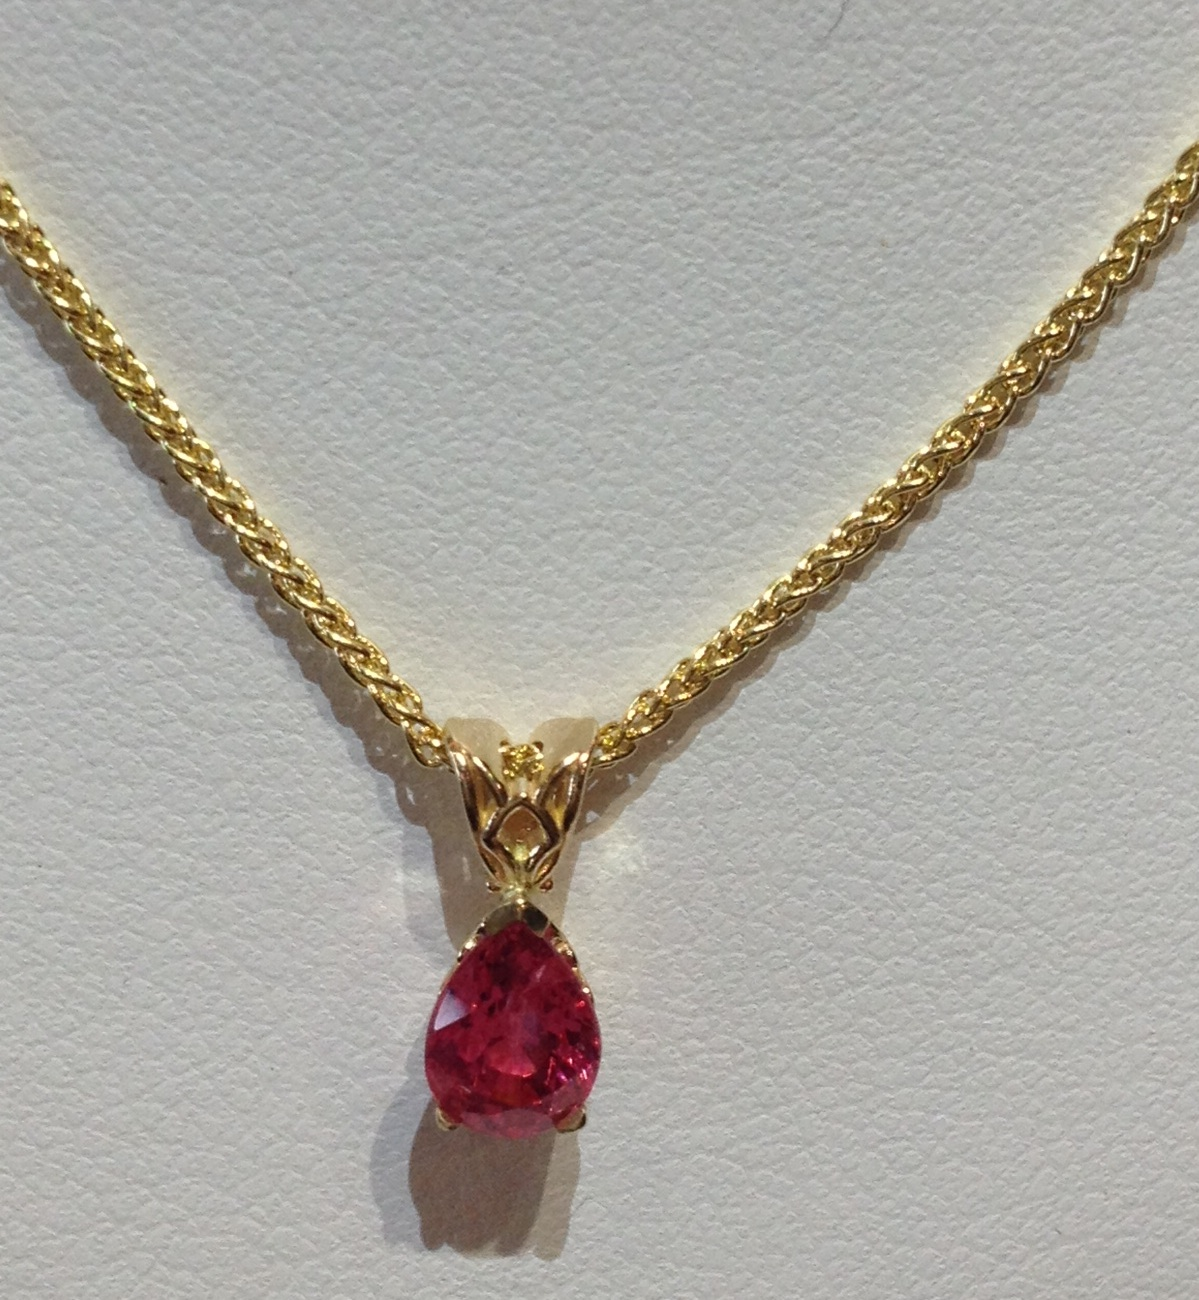 1.09ct. pink Burmese spinel set in 14KT yellow gold on a 14KT yellow gold chain